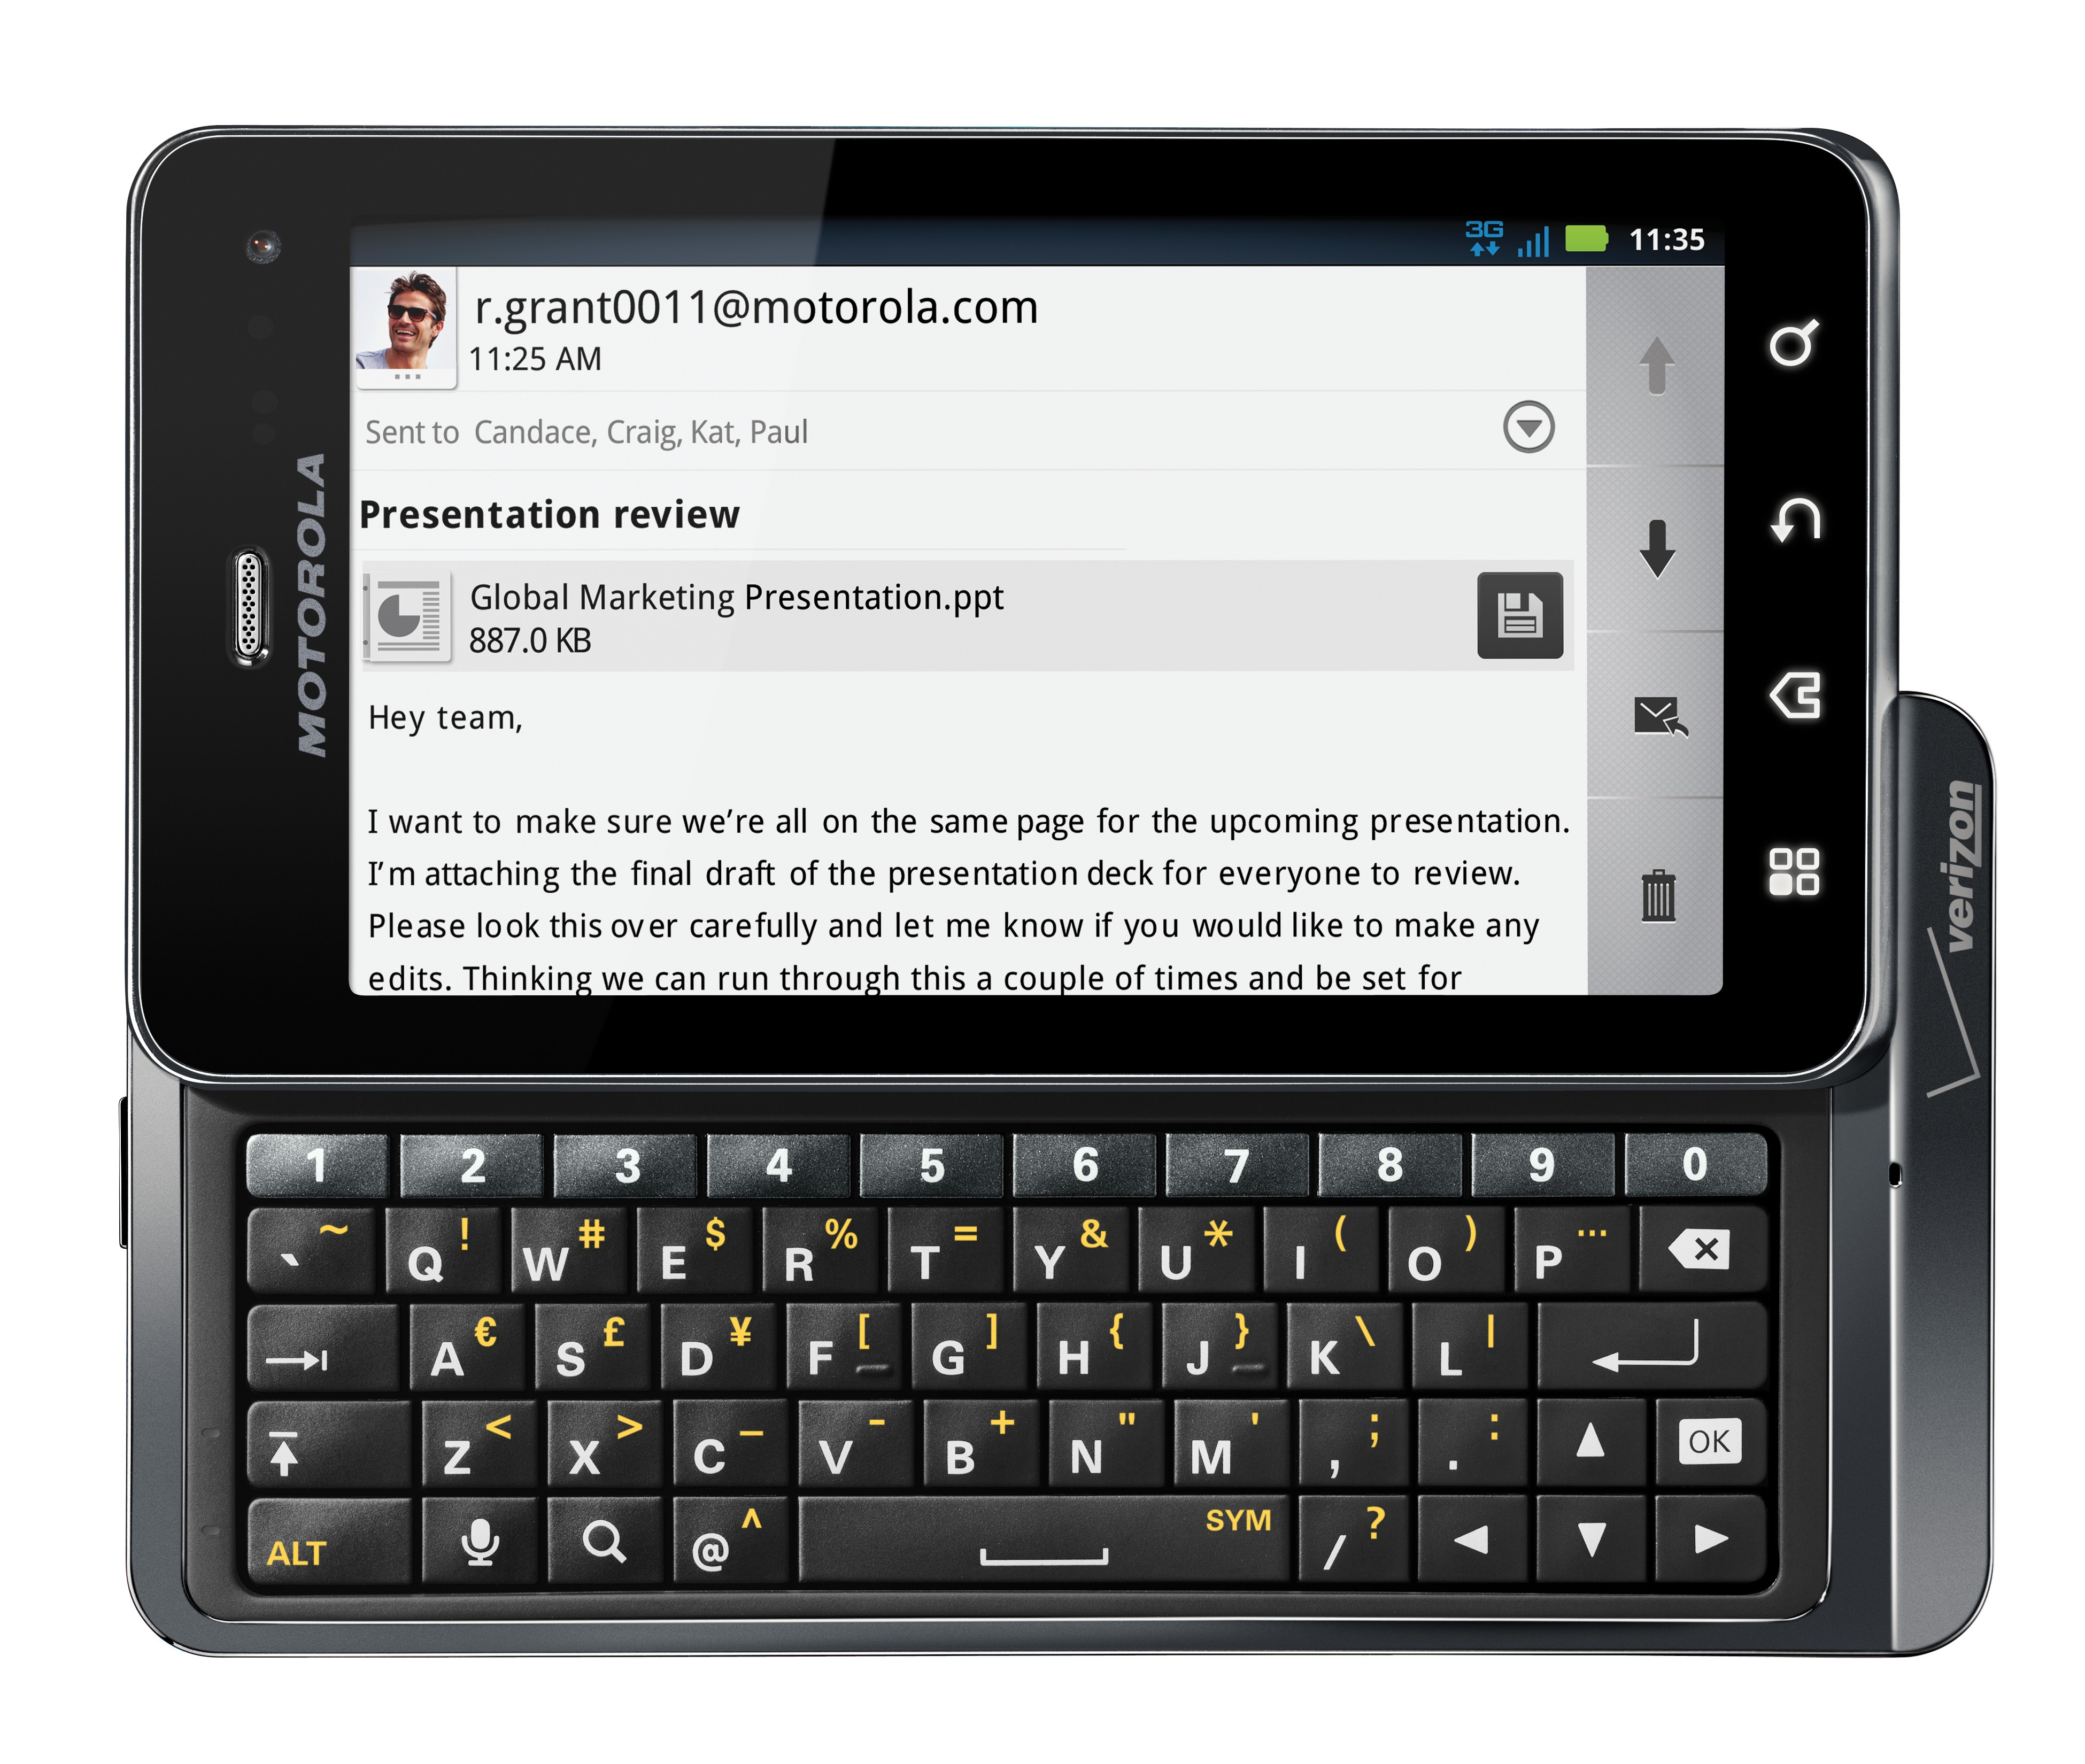 Phone Android Phone With Keyboard the 5 best android phones under 60 us only july 2011 1 motorola droid 3 verizon wirefly